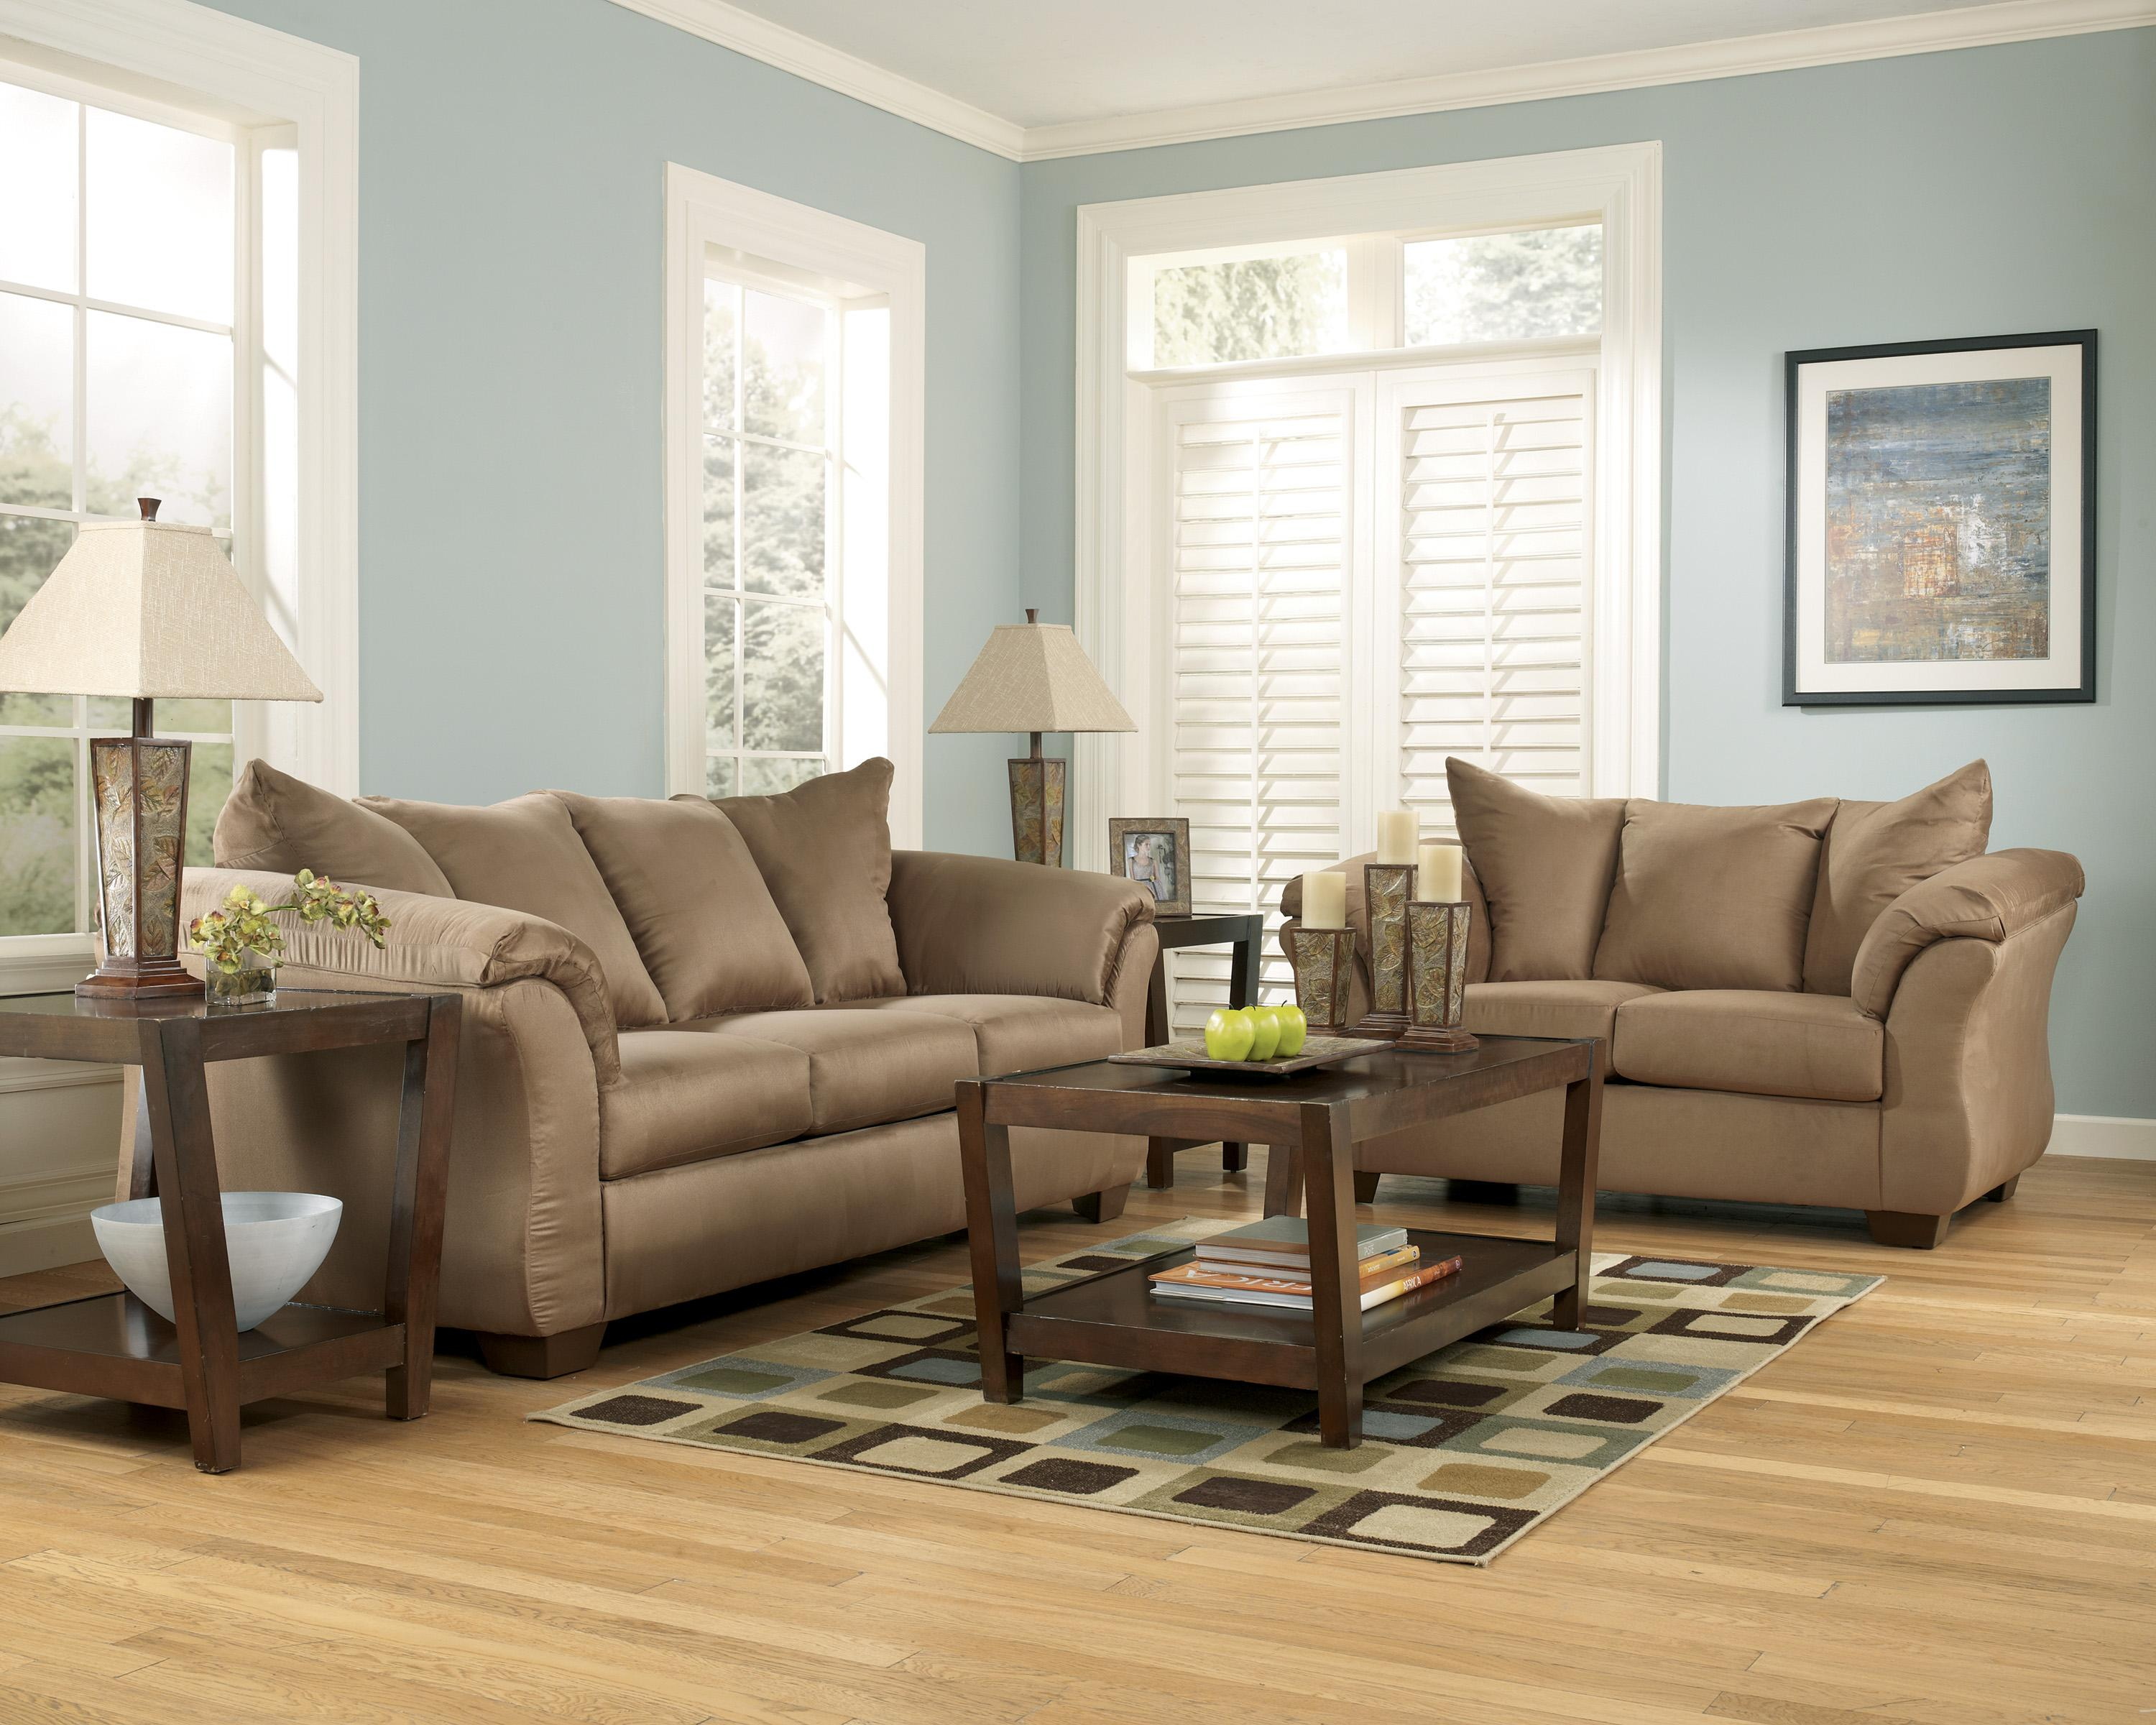 ashley furniture darcy sofa sleeper lazy boy sofas and chairs mocha hogan